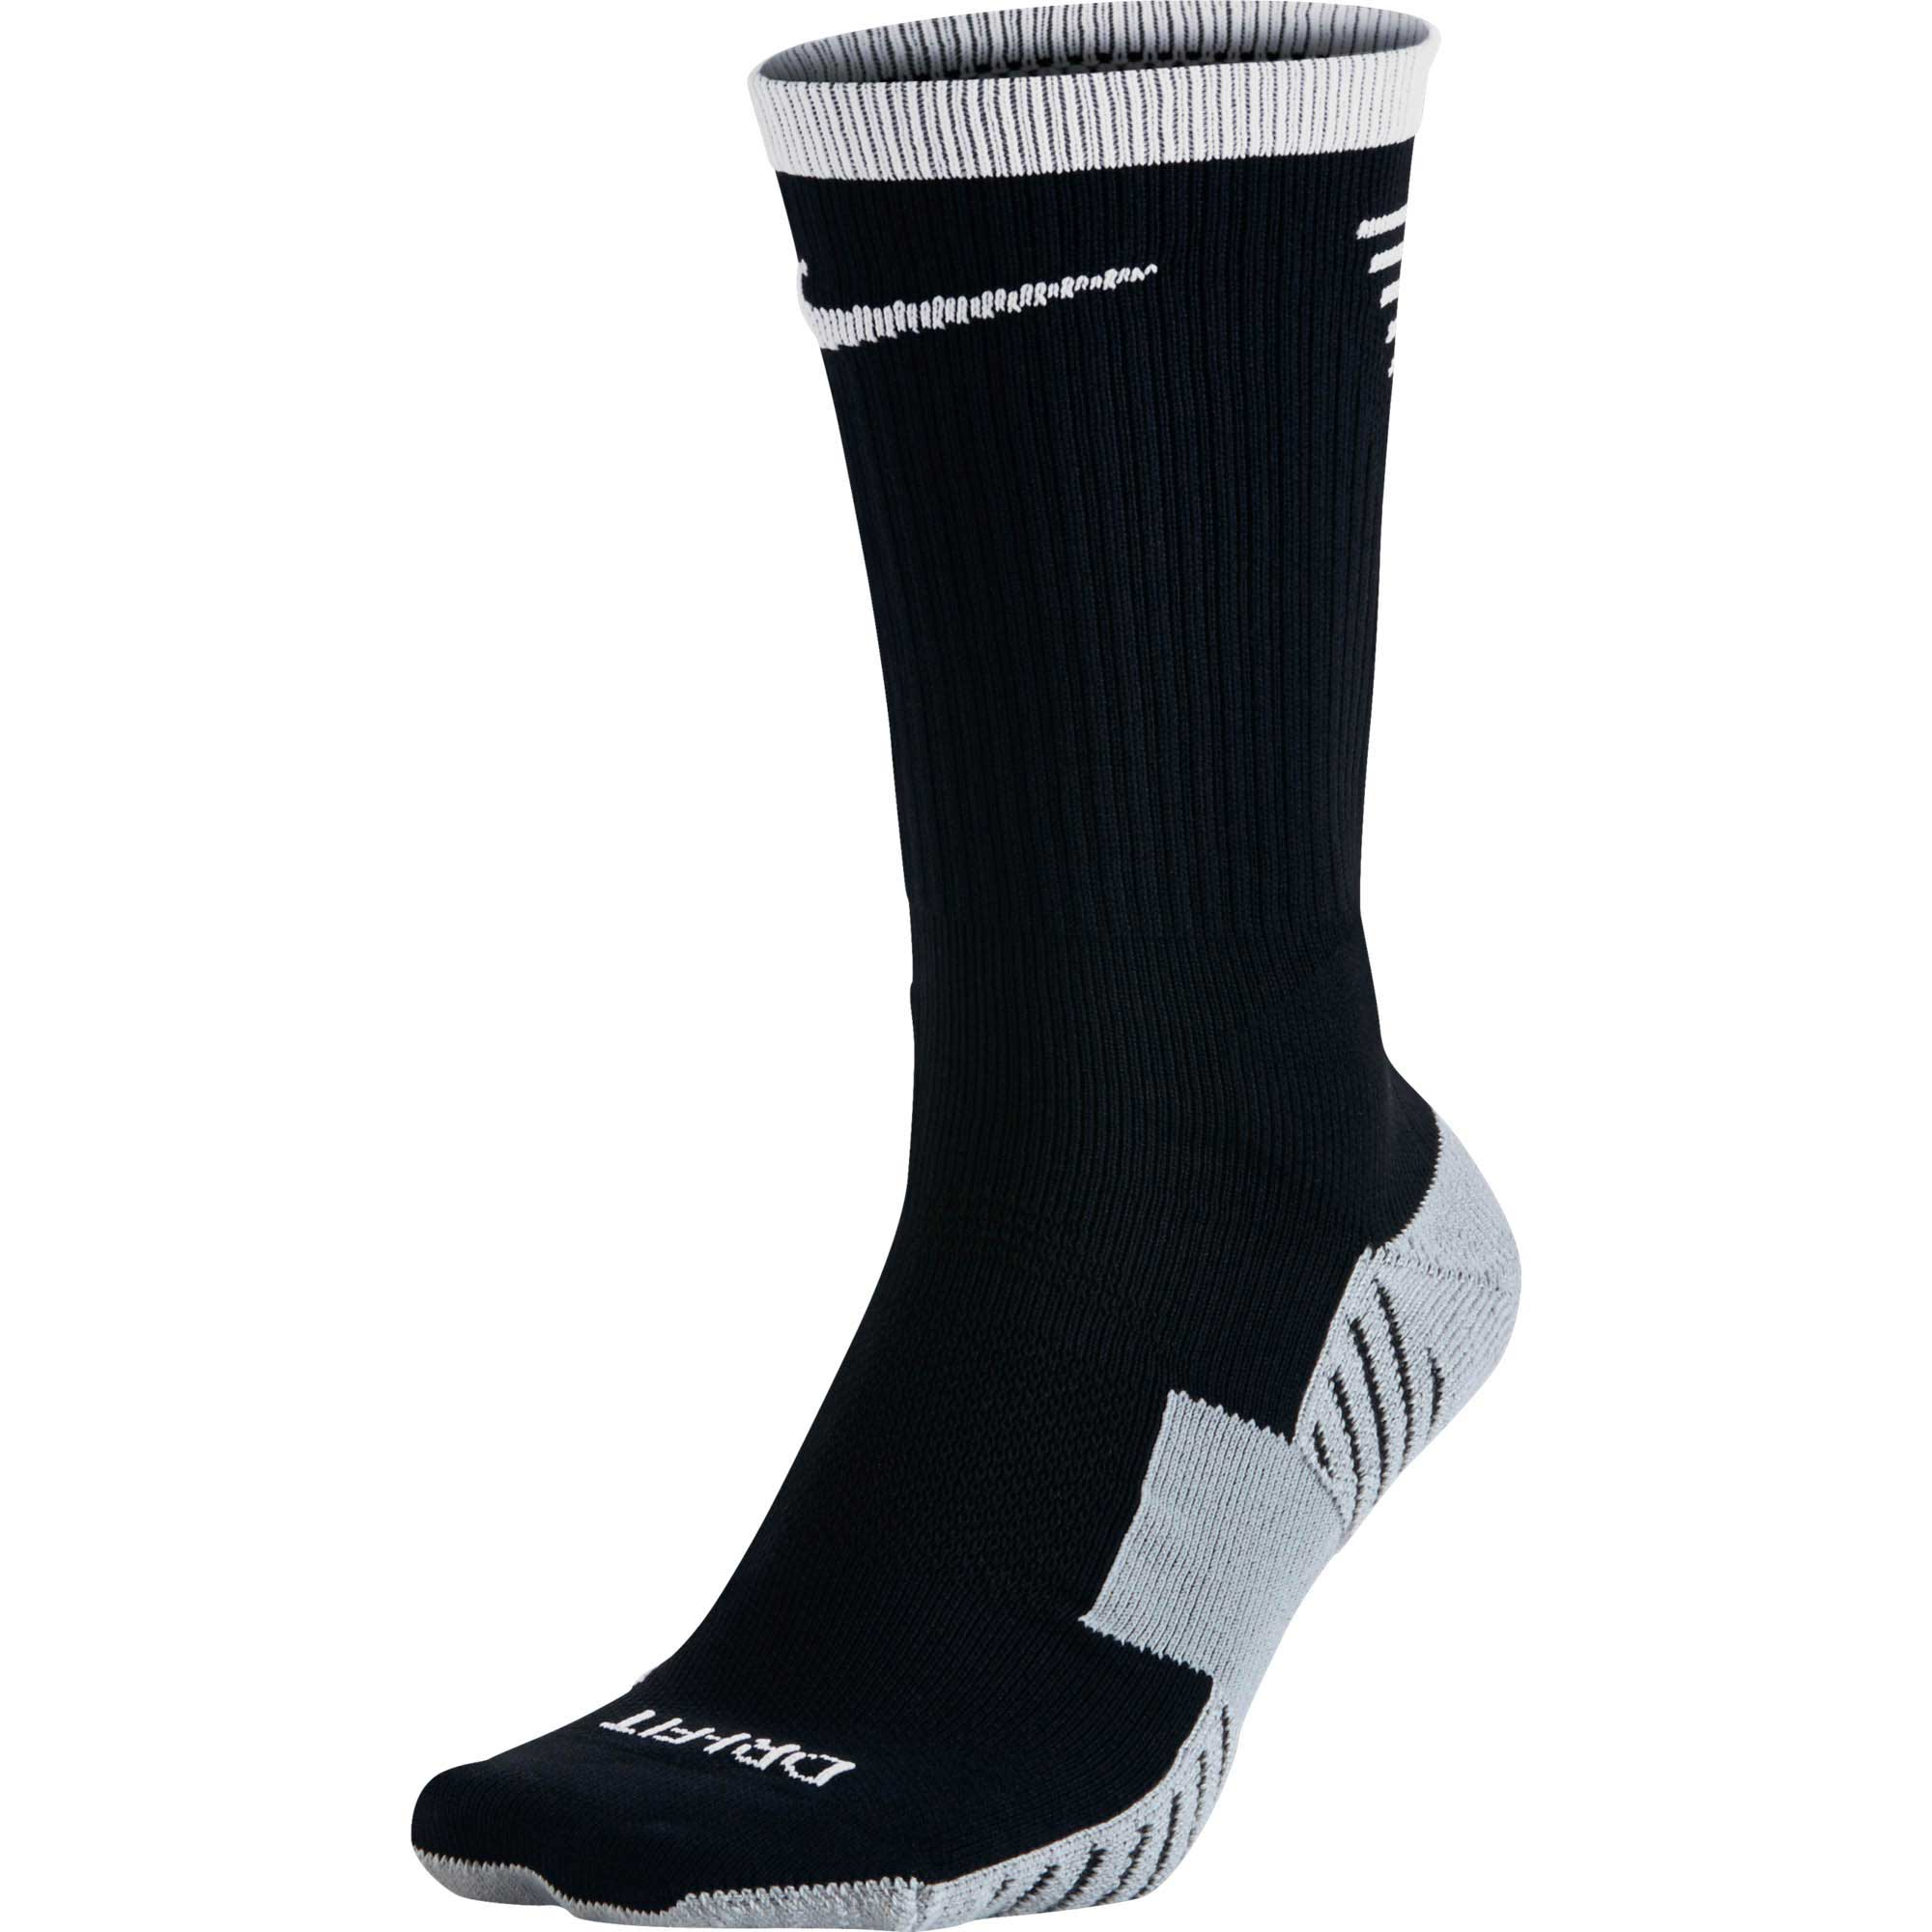 Nike Stadium Football Crew Sock - Black & White - SoccerPro